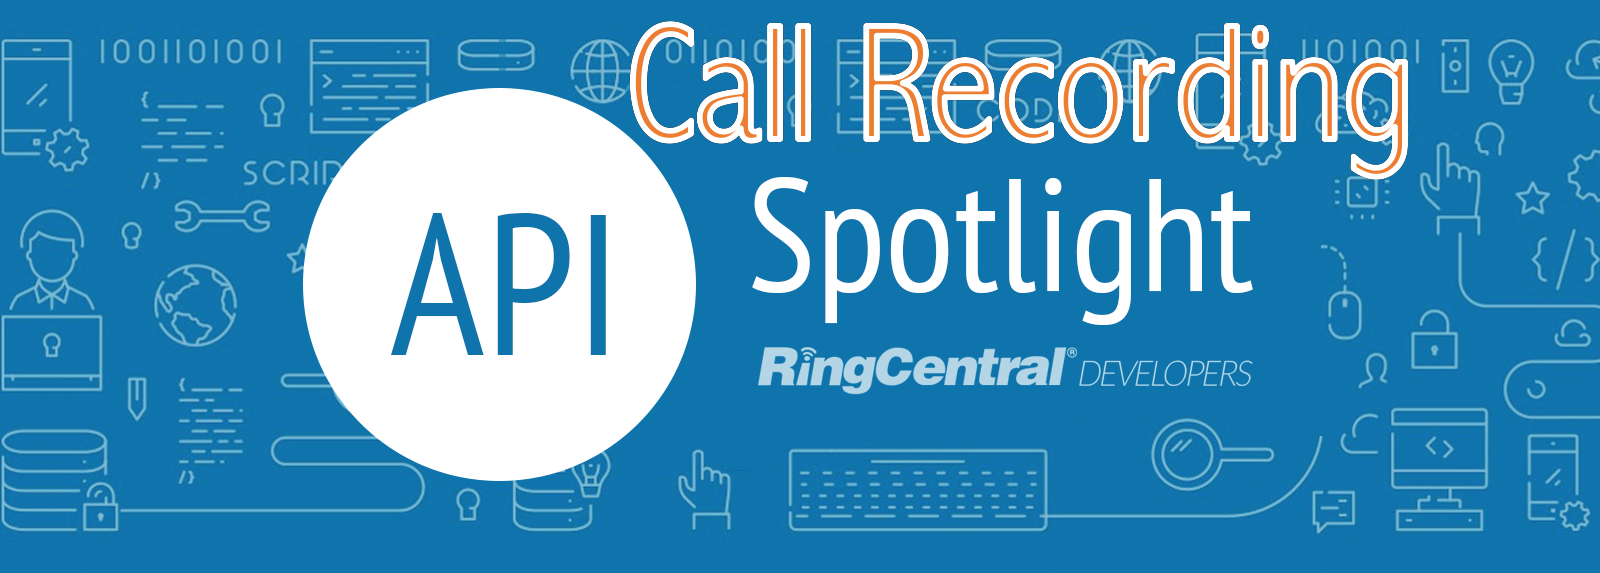 API Spotlight: Call Recording - RingCentral Developers - Medium